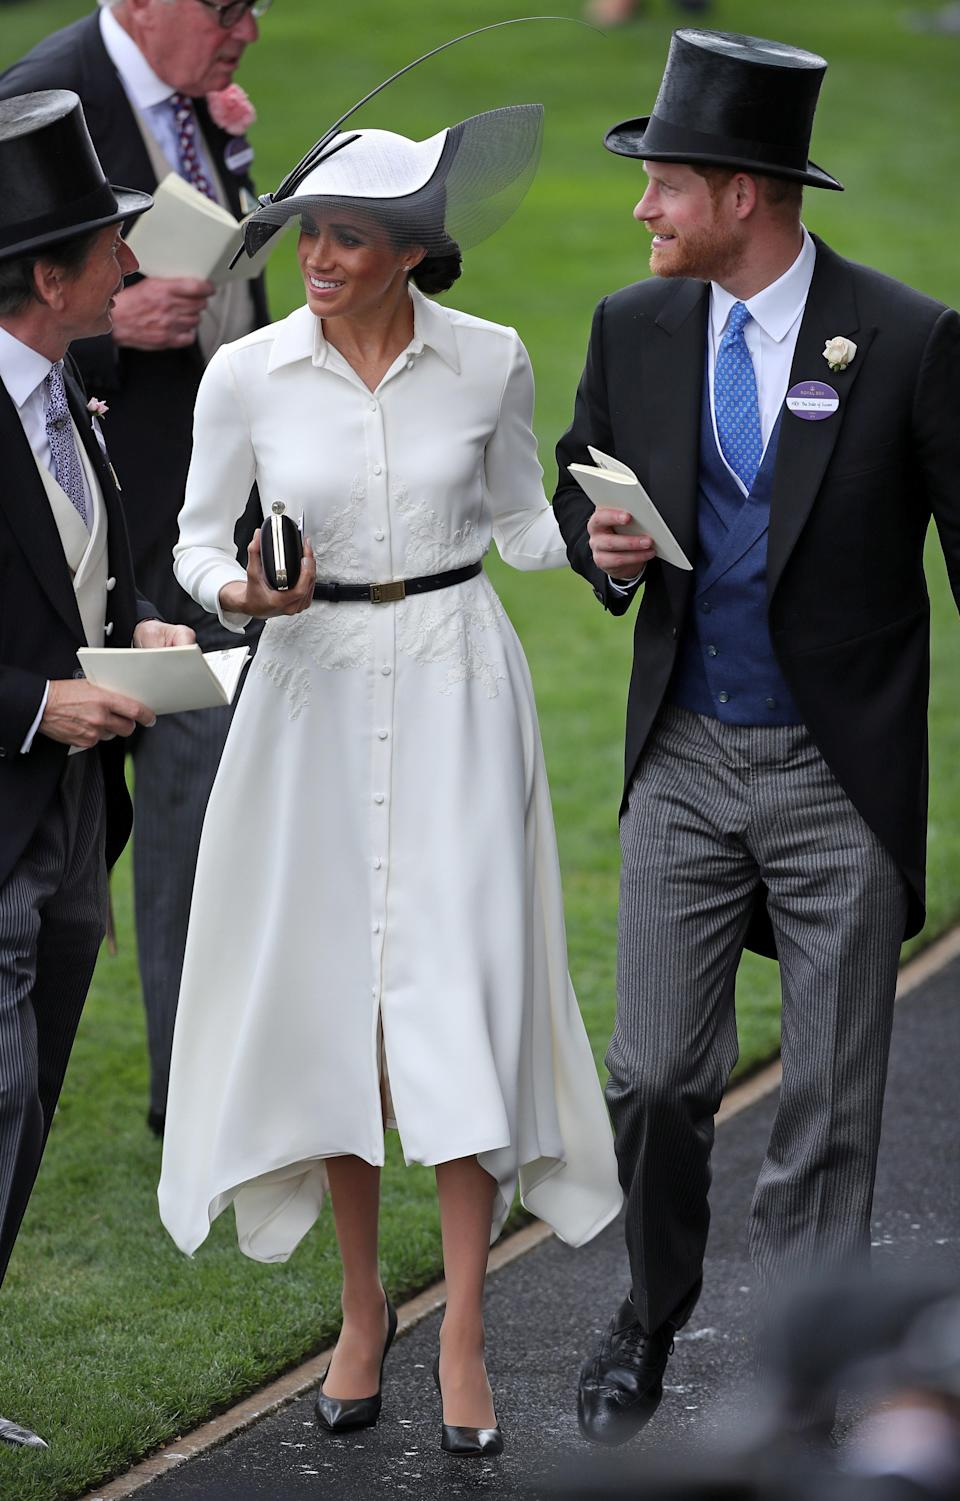 <p>The Duke and Duchess of Sussex finally made their Royal Ascot debut one month after the royal wedding on 19 June 2018. For the momentous occasion, Meghan wore her third Givenchy look accessorised with a monochrome hat by Philip Treacy. <em>[Photo: Getty]</em> </p>